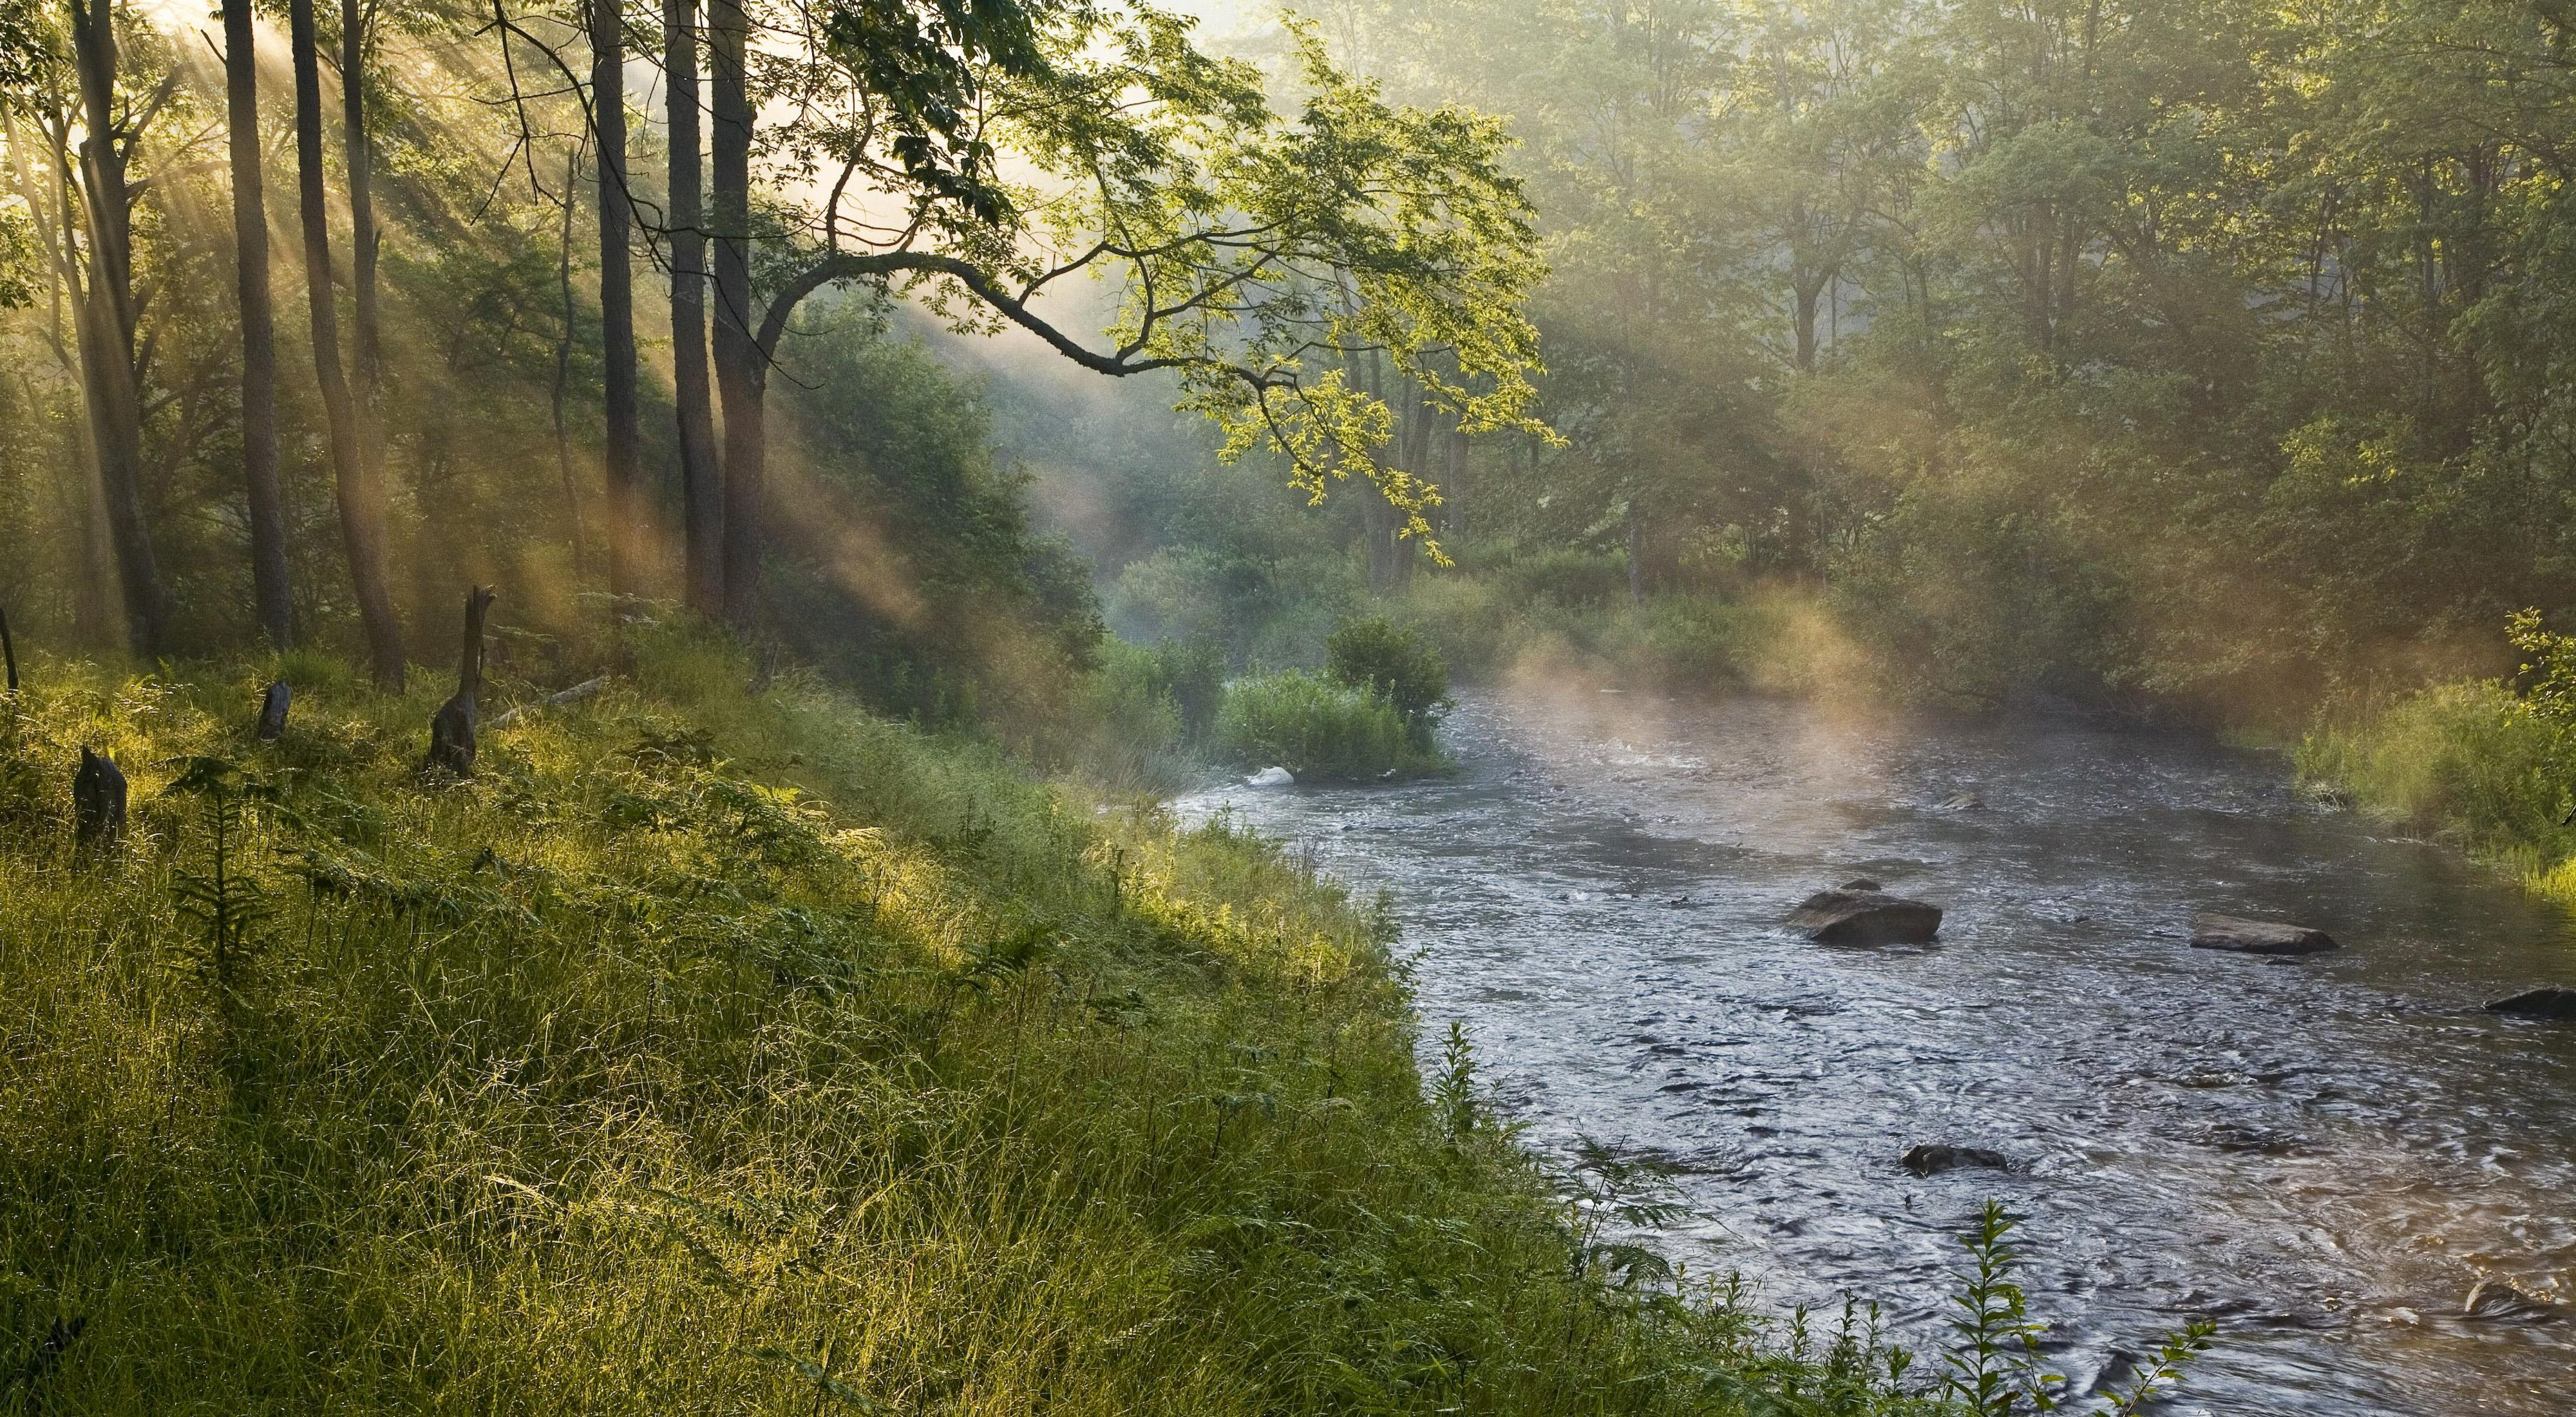 Photo of a river in early-morning fog.